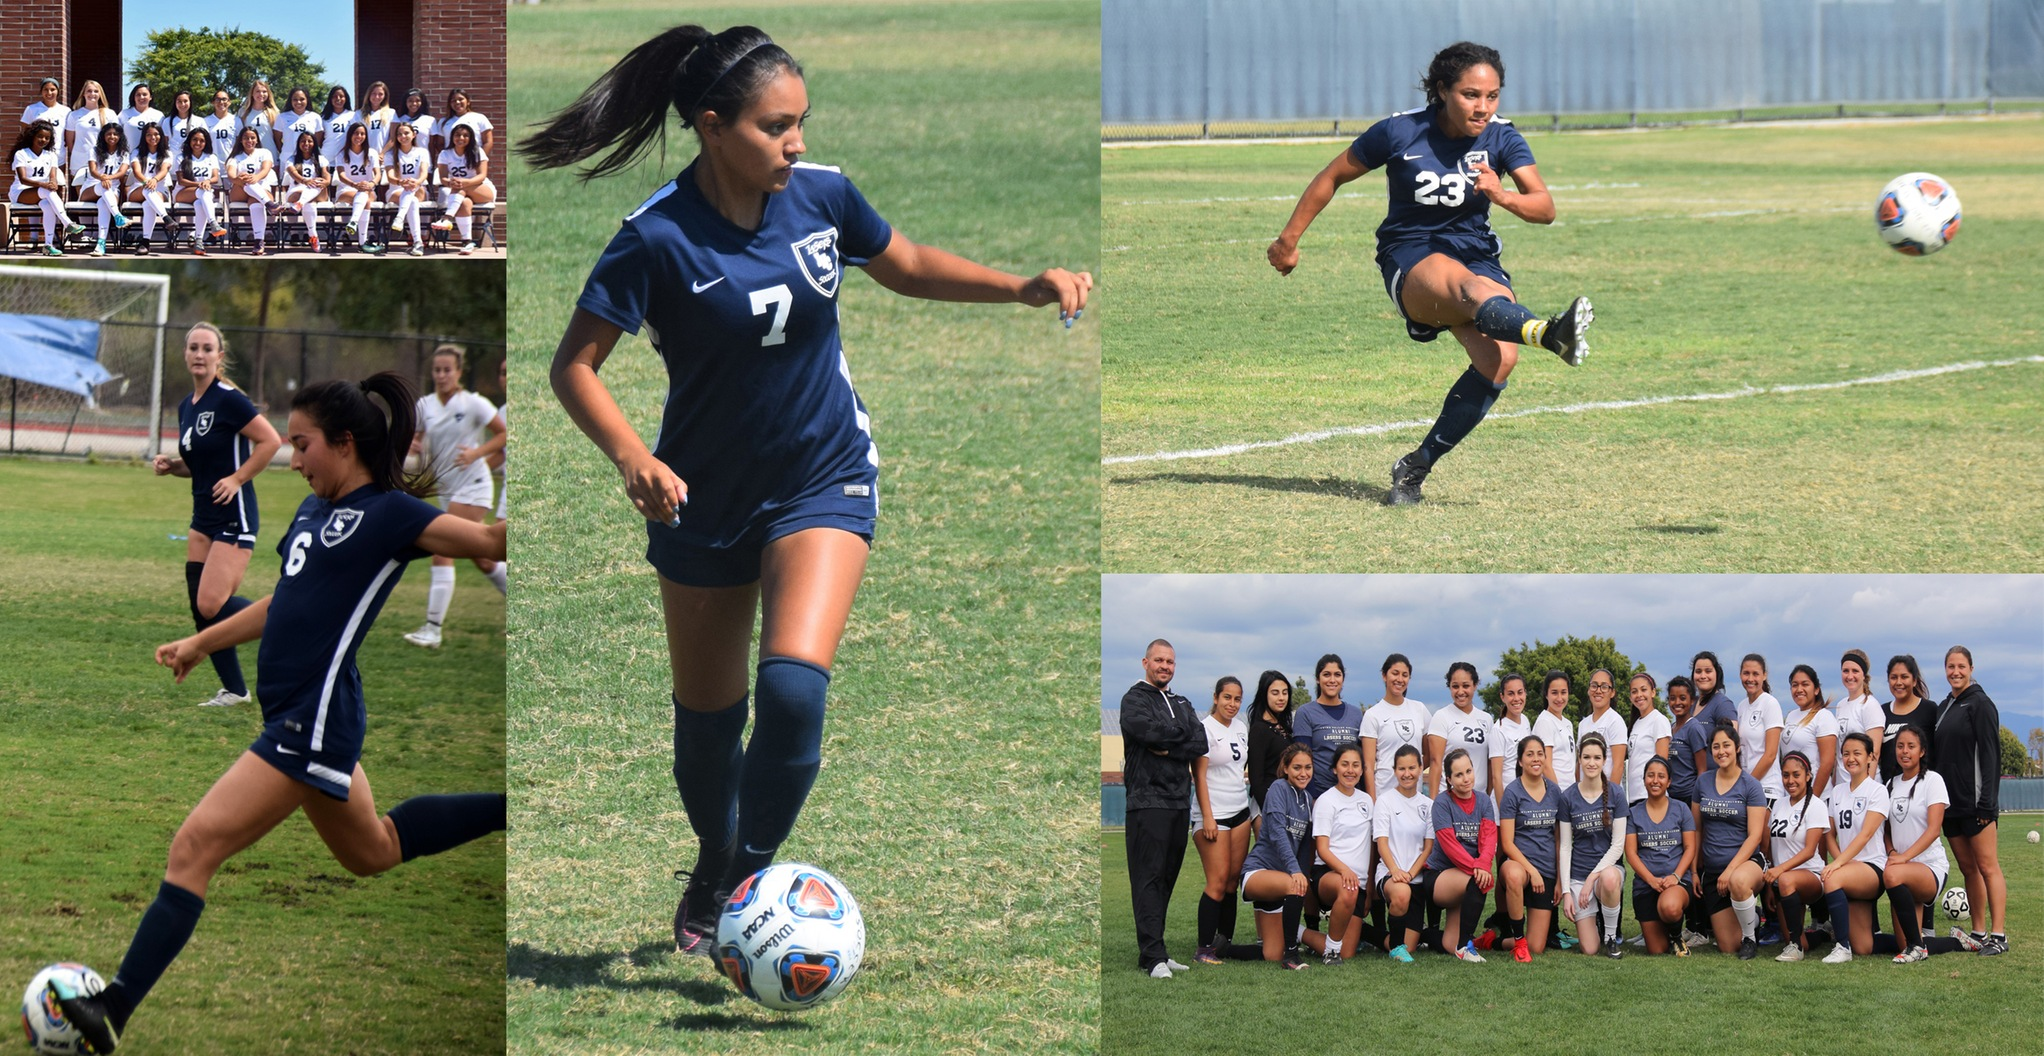 2018 Irvine Valley women's soccer schedule released